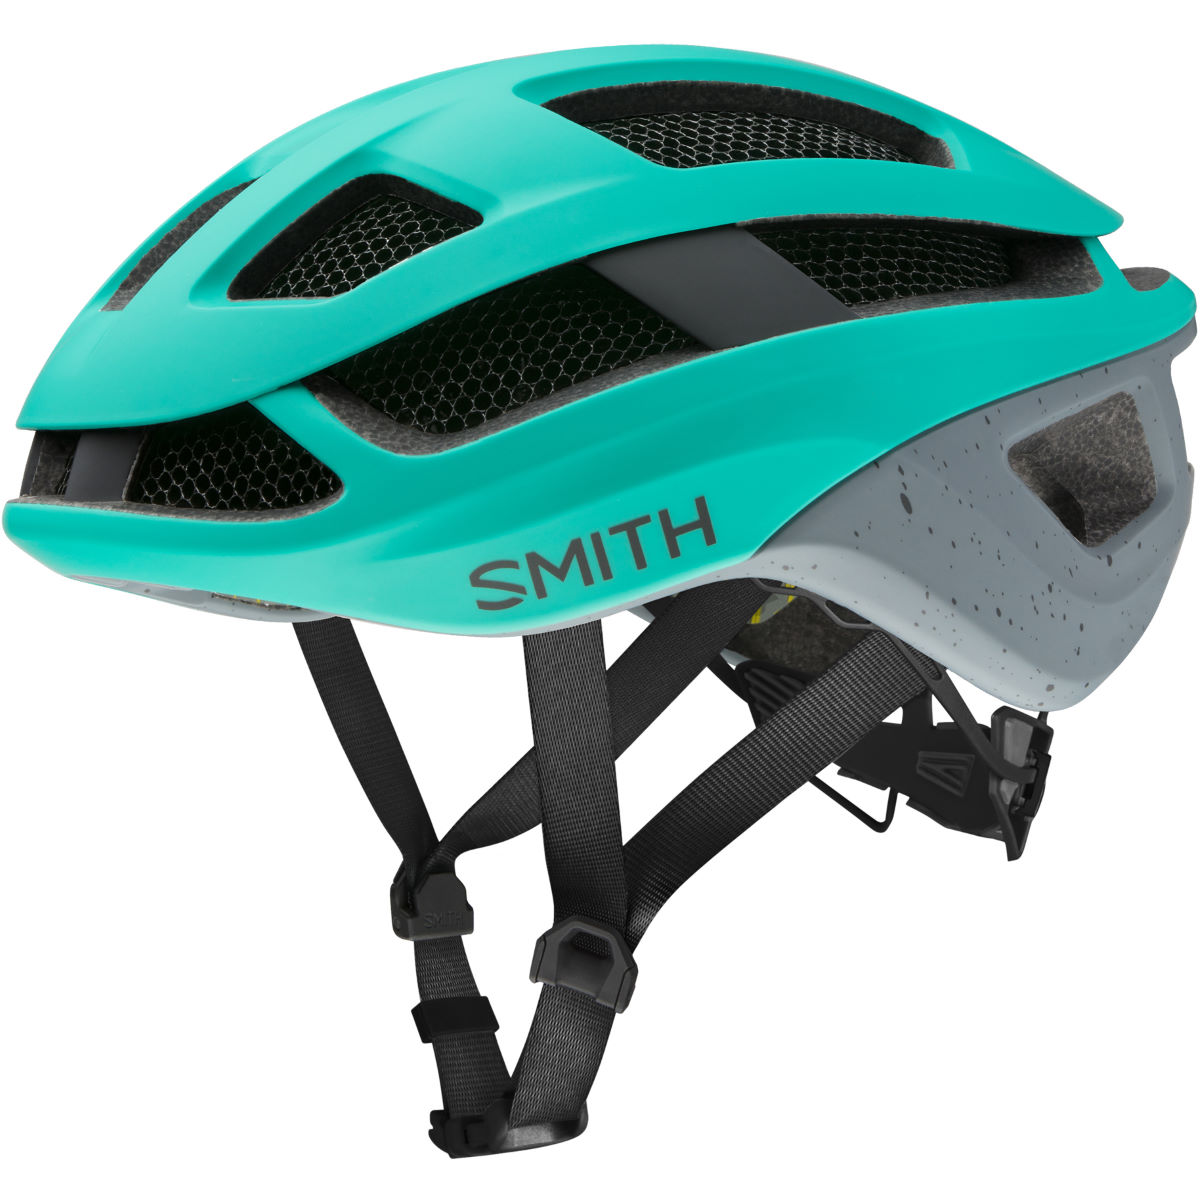 Image of Casque de route Smith Trace MIPS - M Matte Jade/Charcoal | Casques